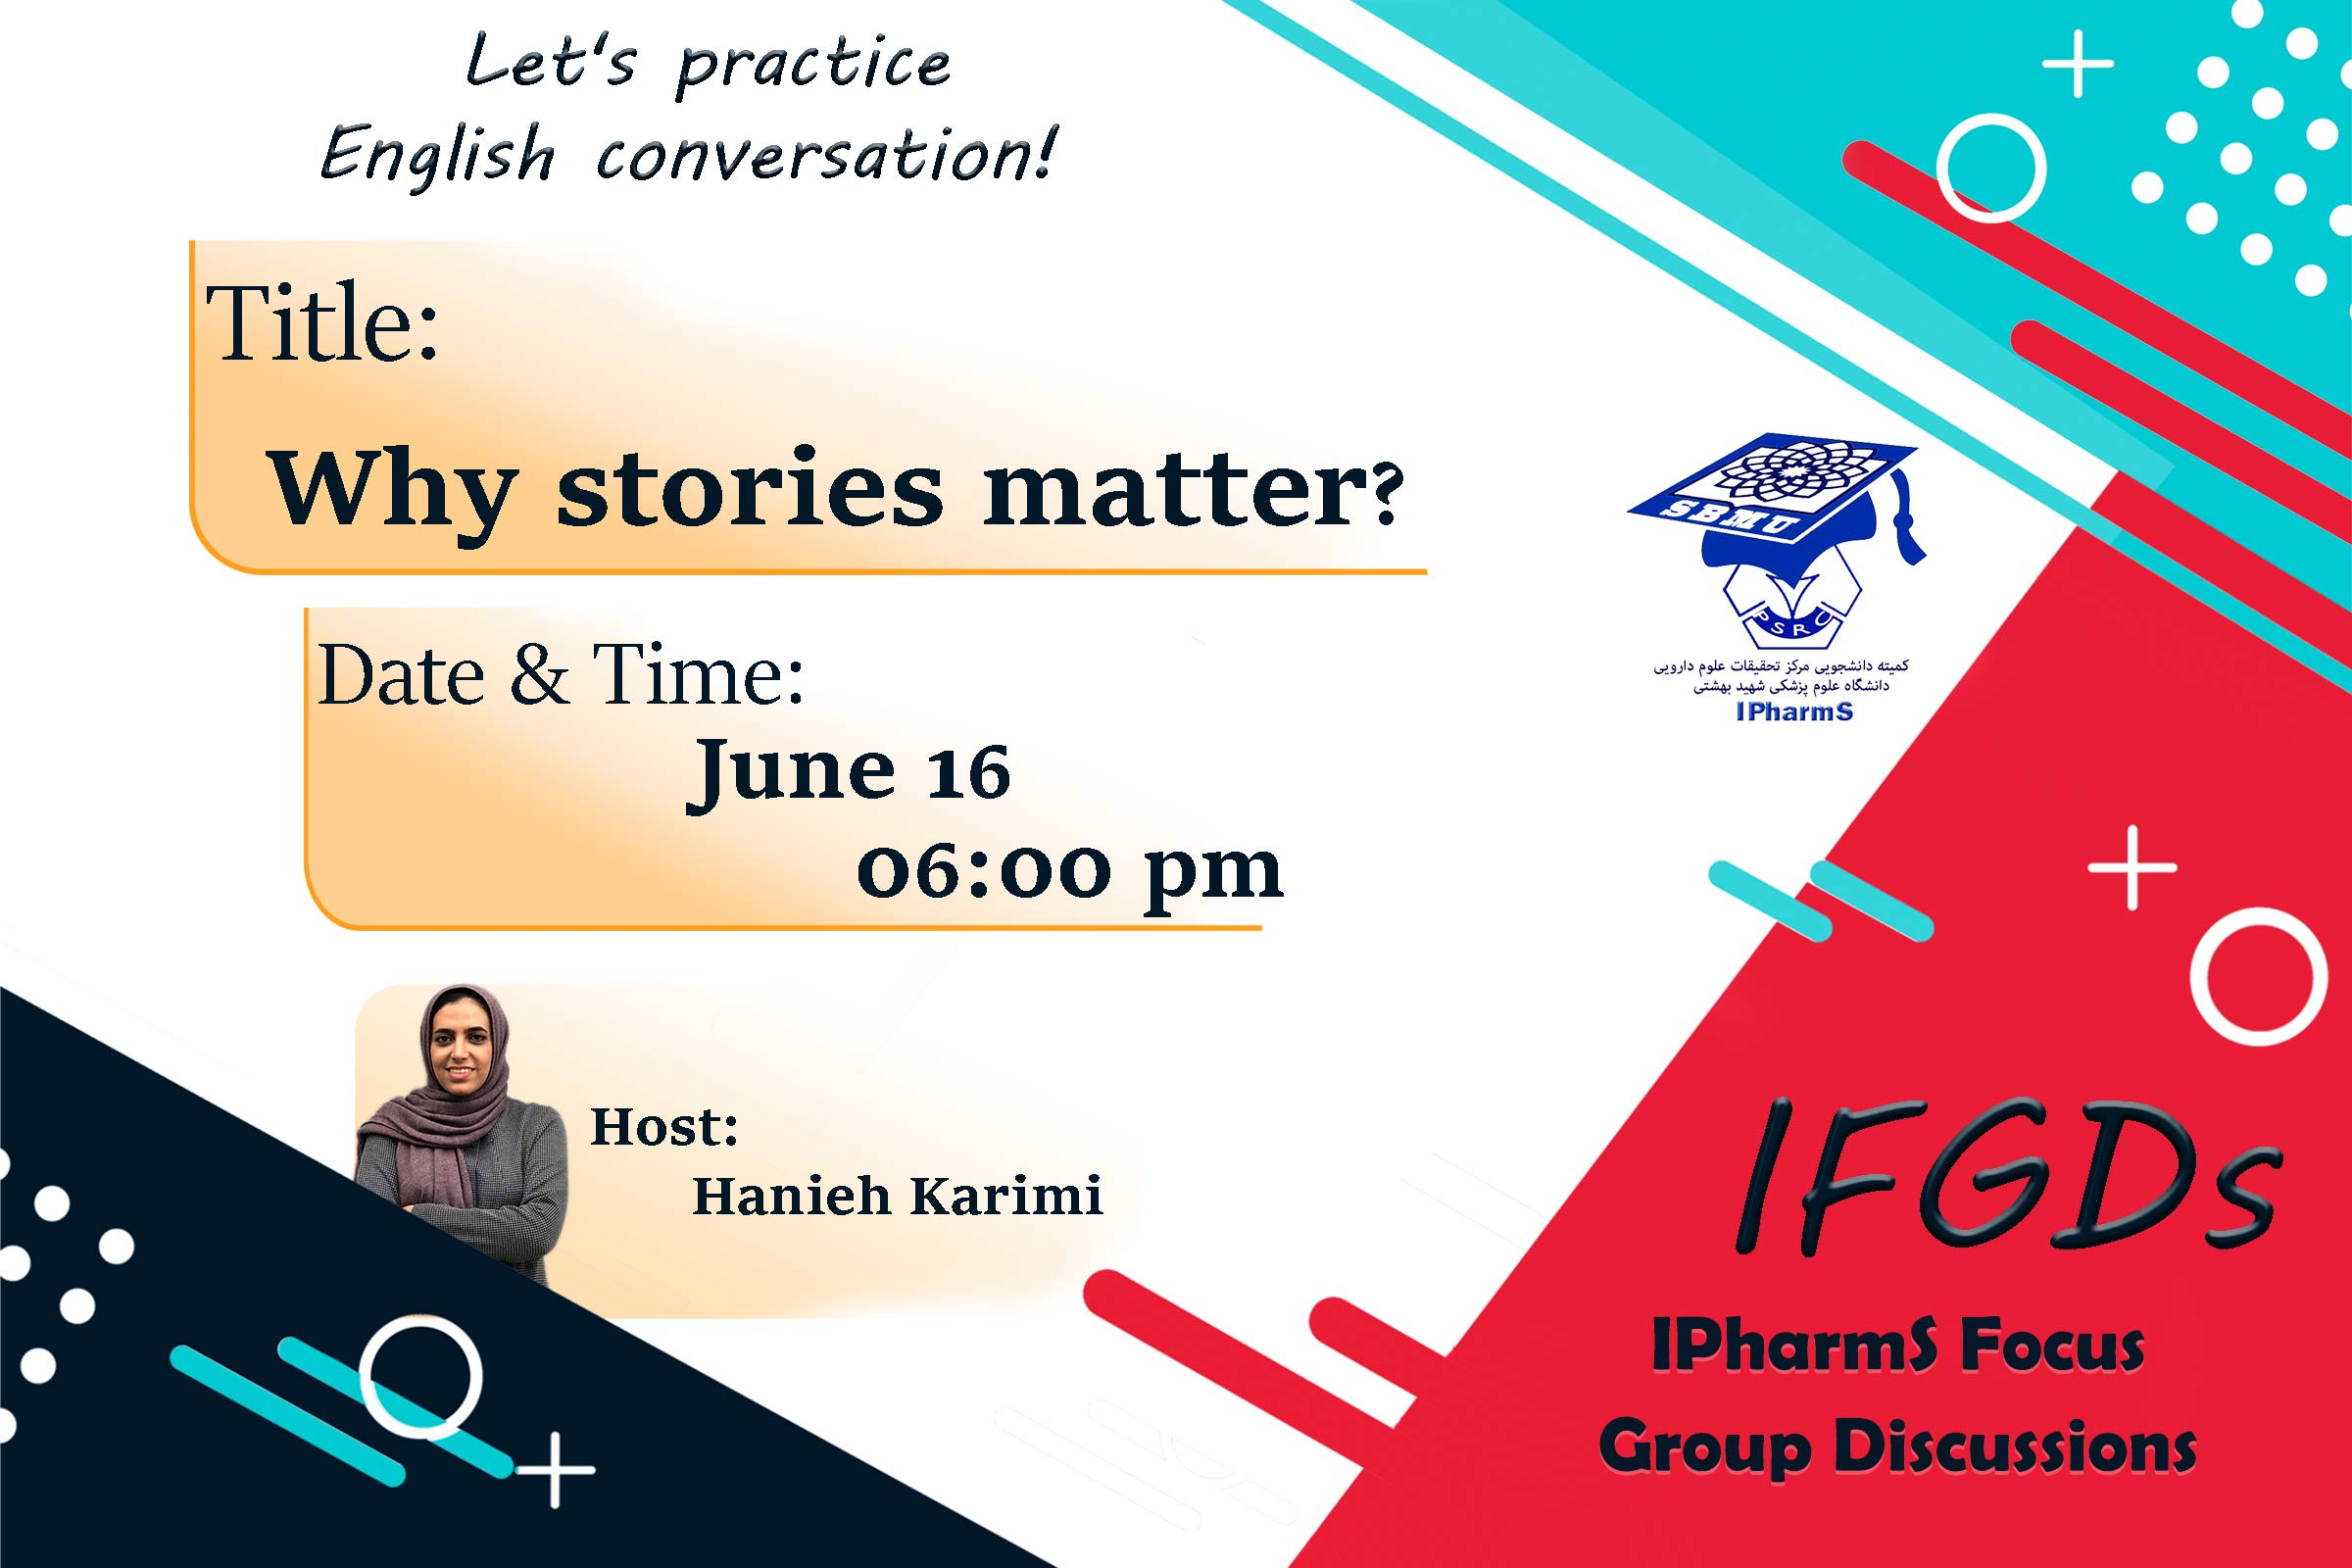 IFGDs Session 6: Why stories matter